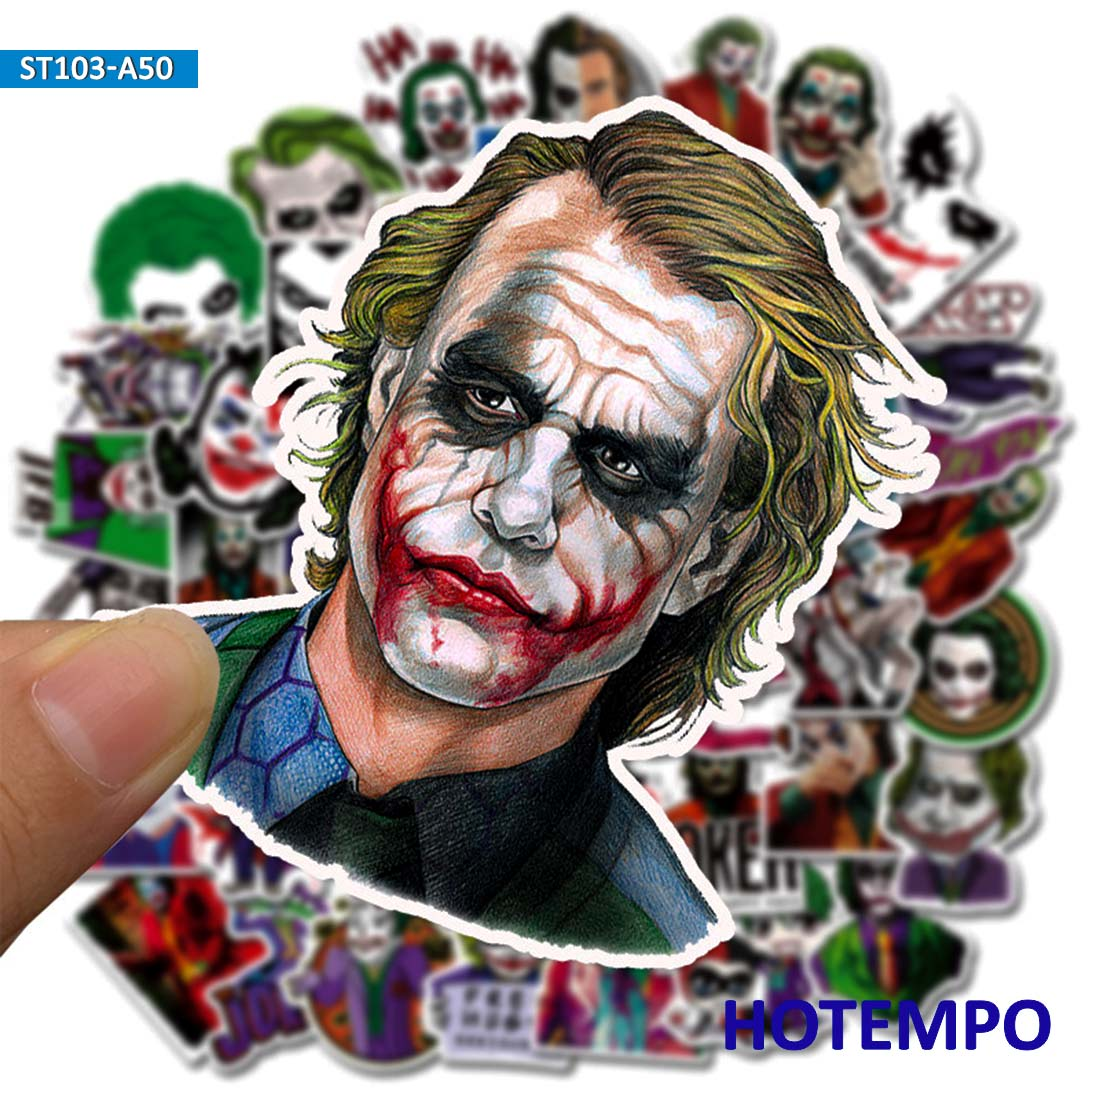 50pcs Jokes On You Comic Movie Joker Style Stickers Smile For Mobile Phone Laptop Luggage Case Skateboard Anime Cartoon Stickers